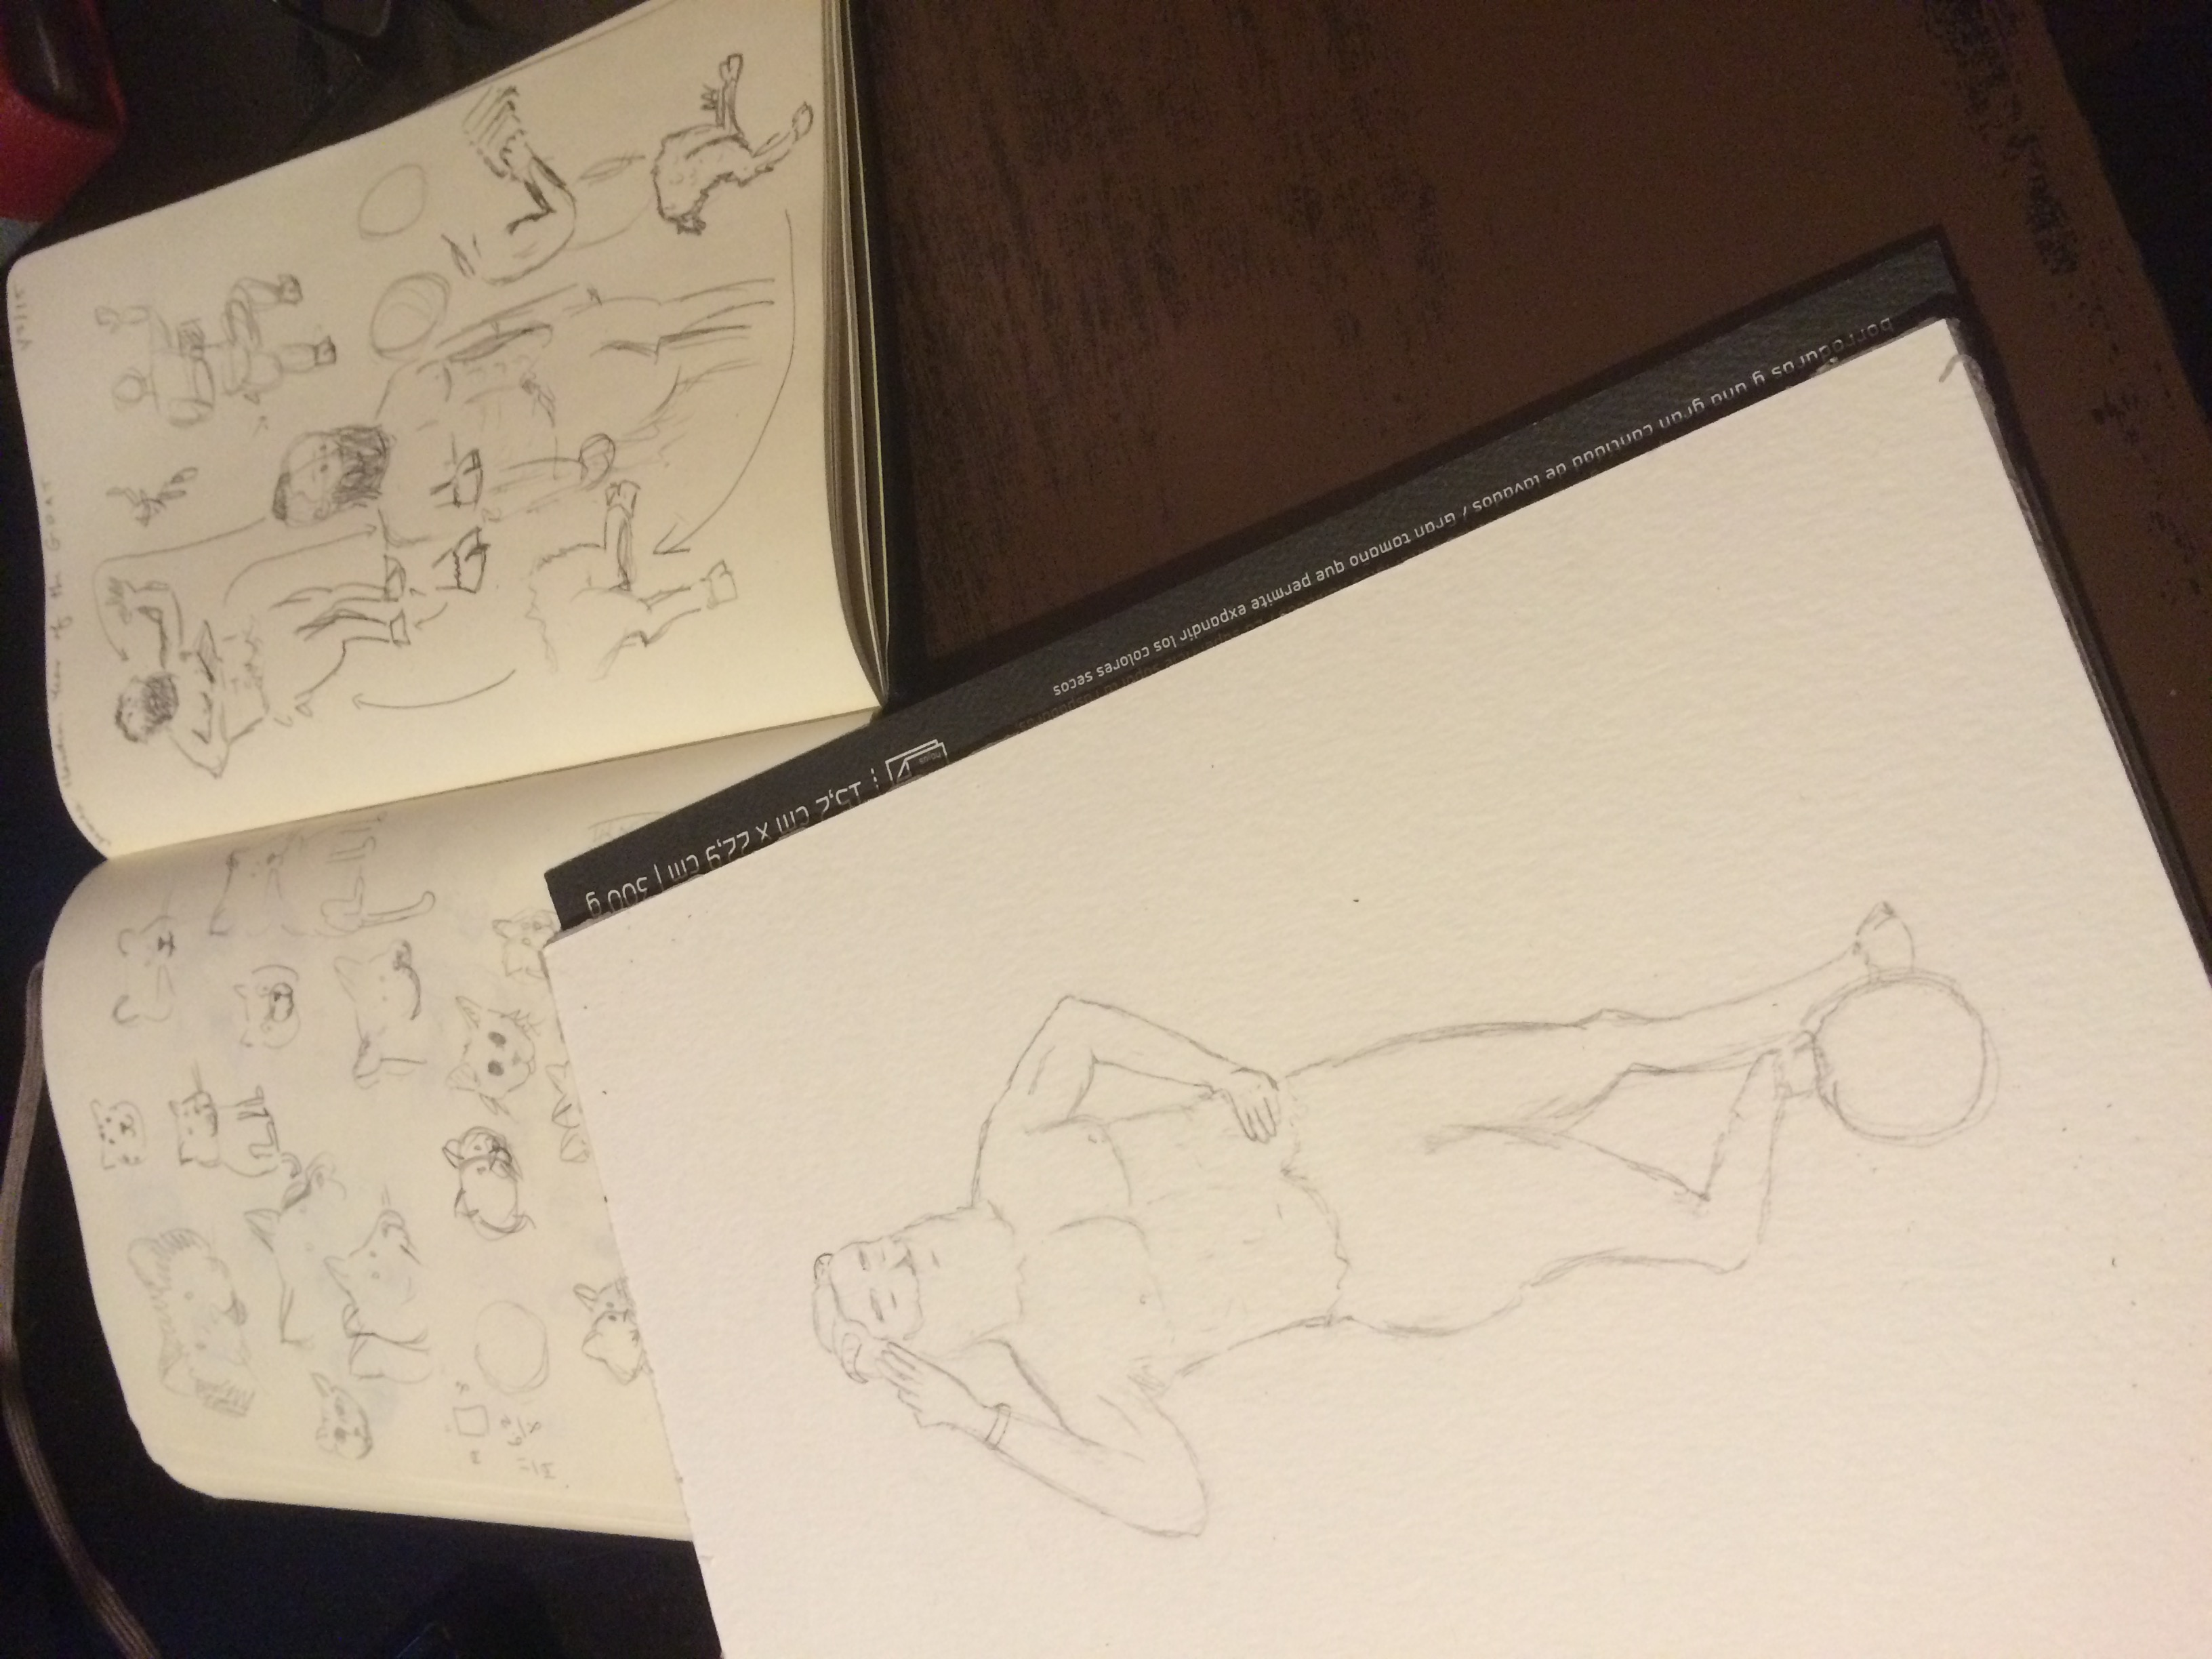 Preliminary sketches from notebook. The Matilda sketches make an appearance.